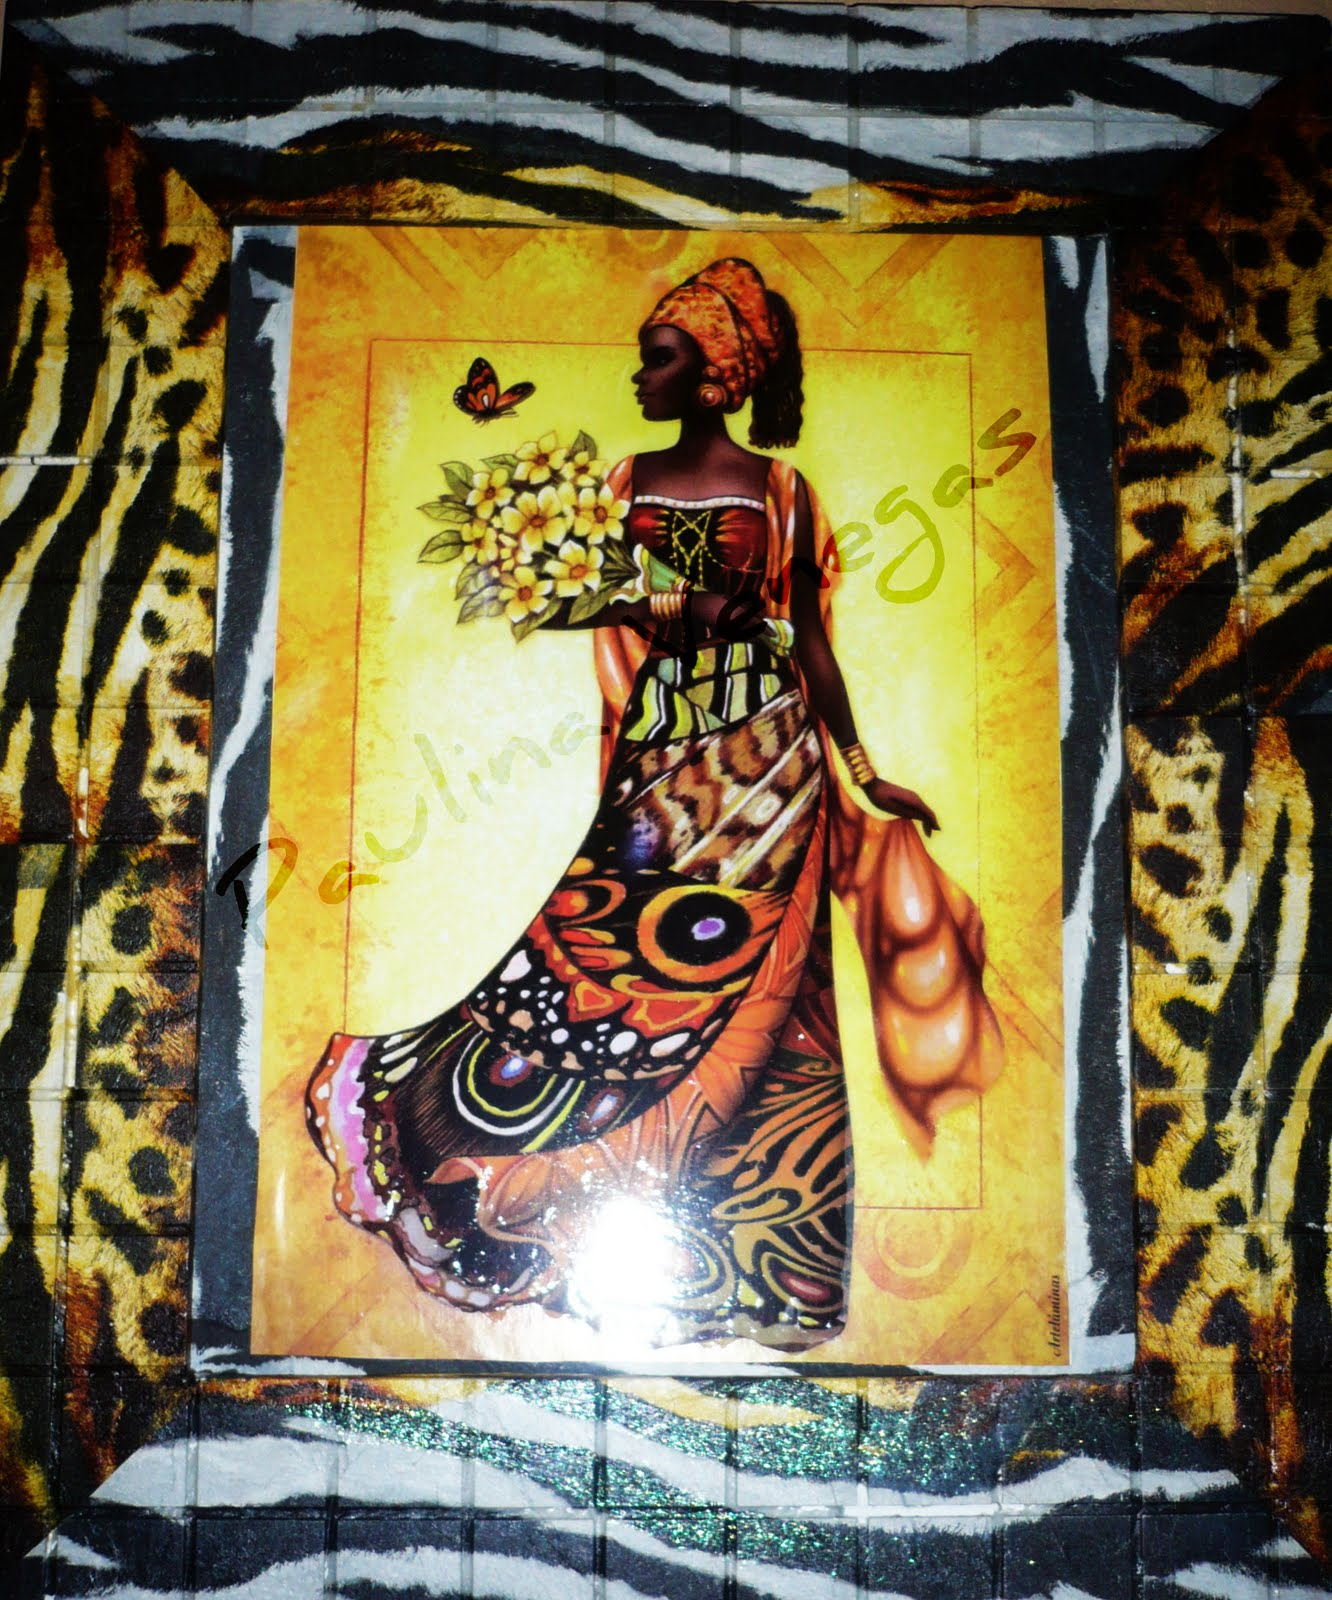 Tejas Decoradas En Relieve Tejas Decoradas En Relieve Cuadros Con Diseños Africanos